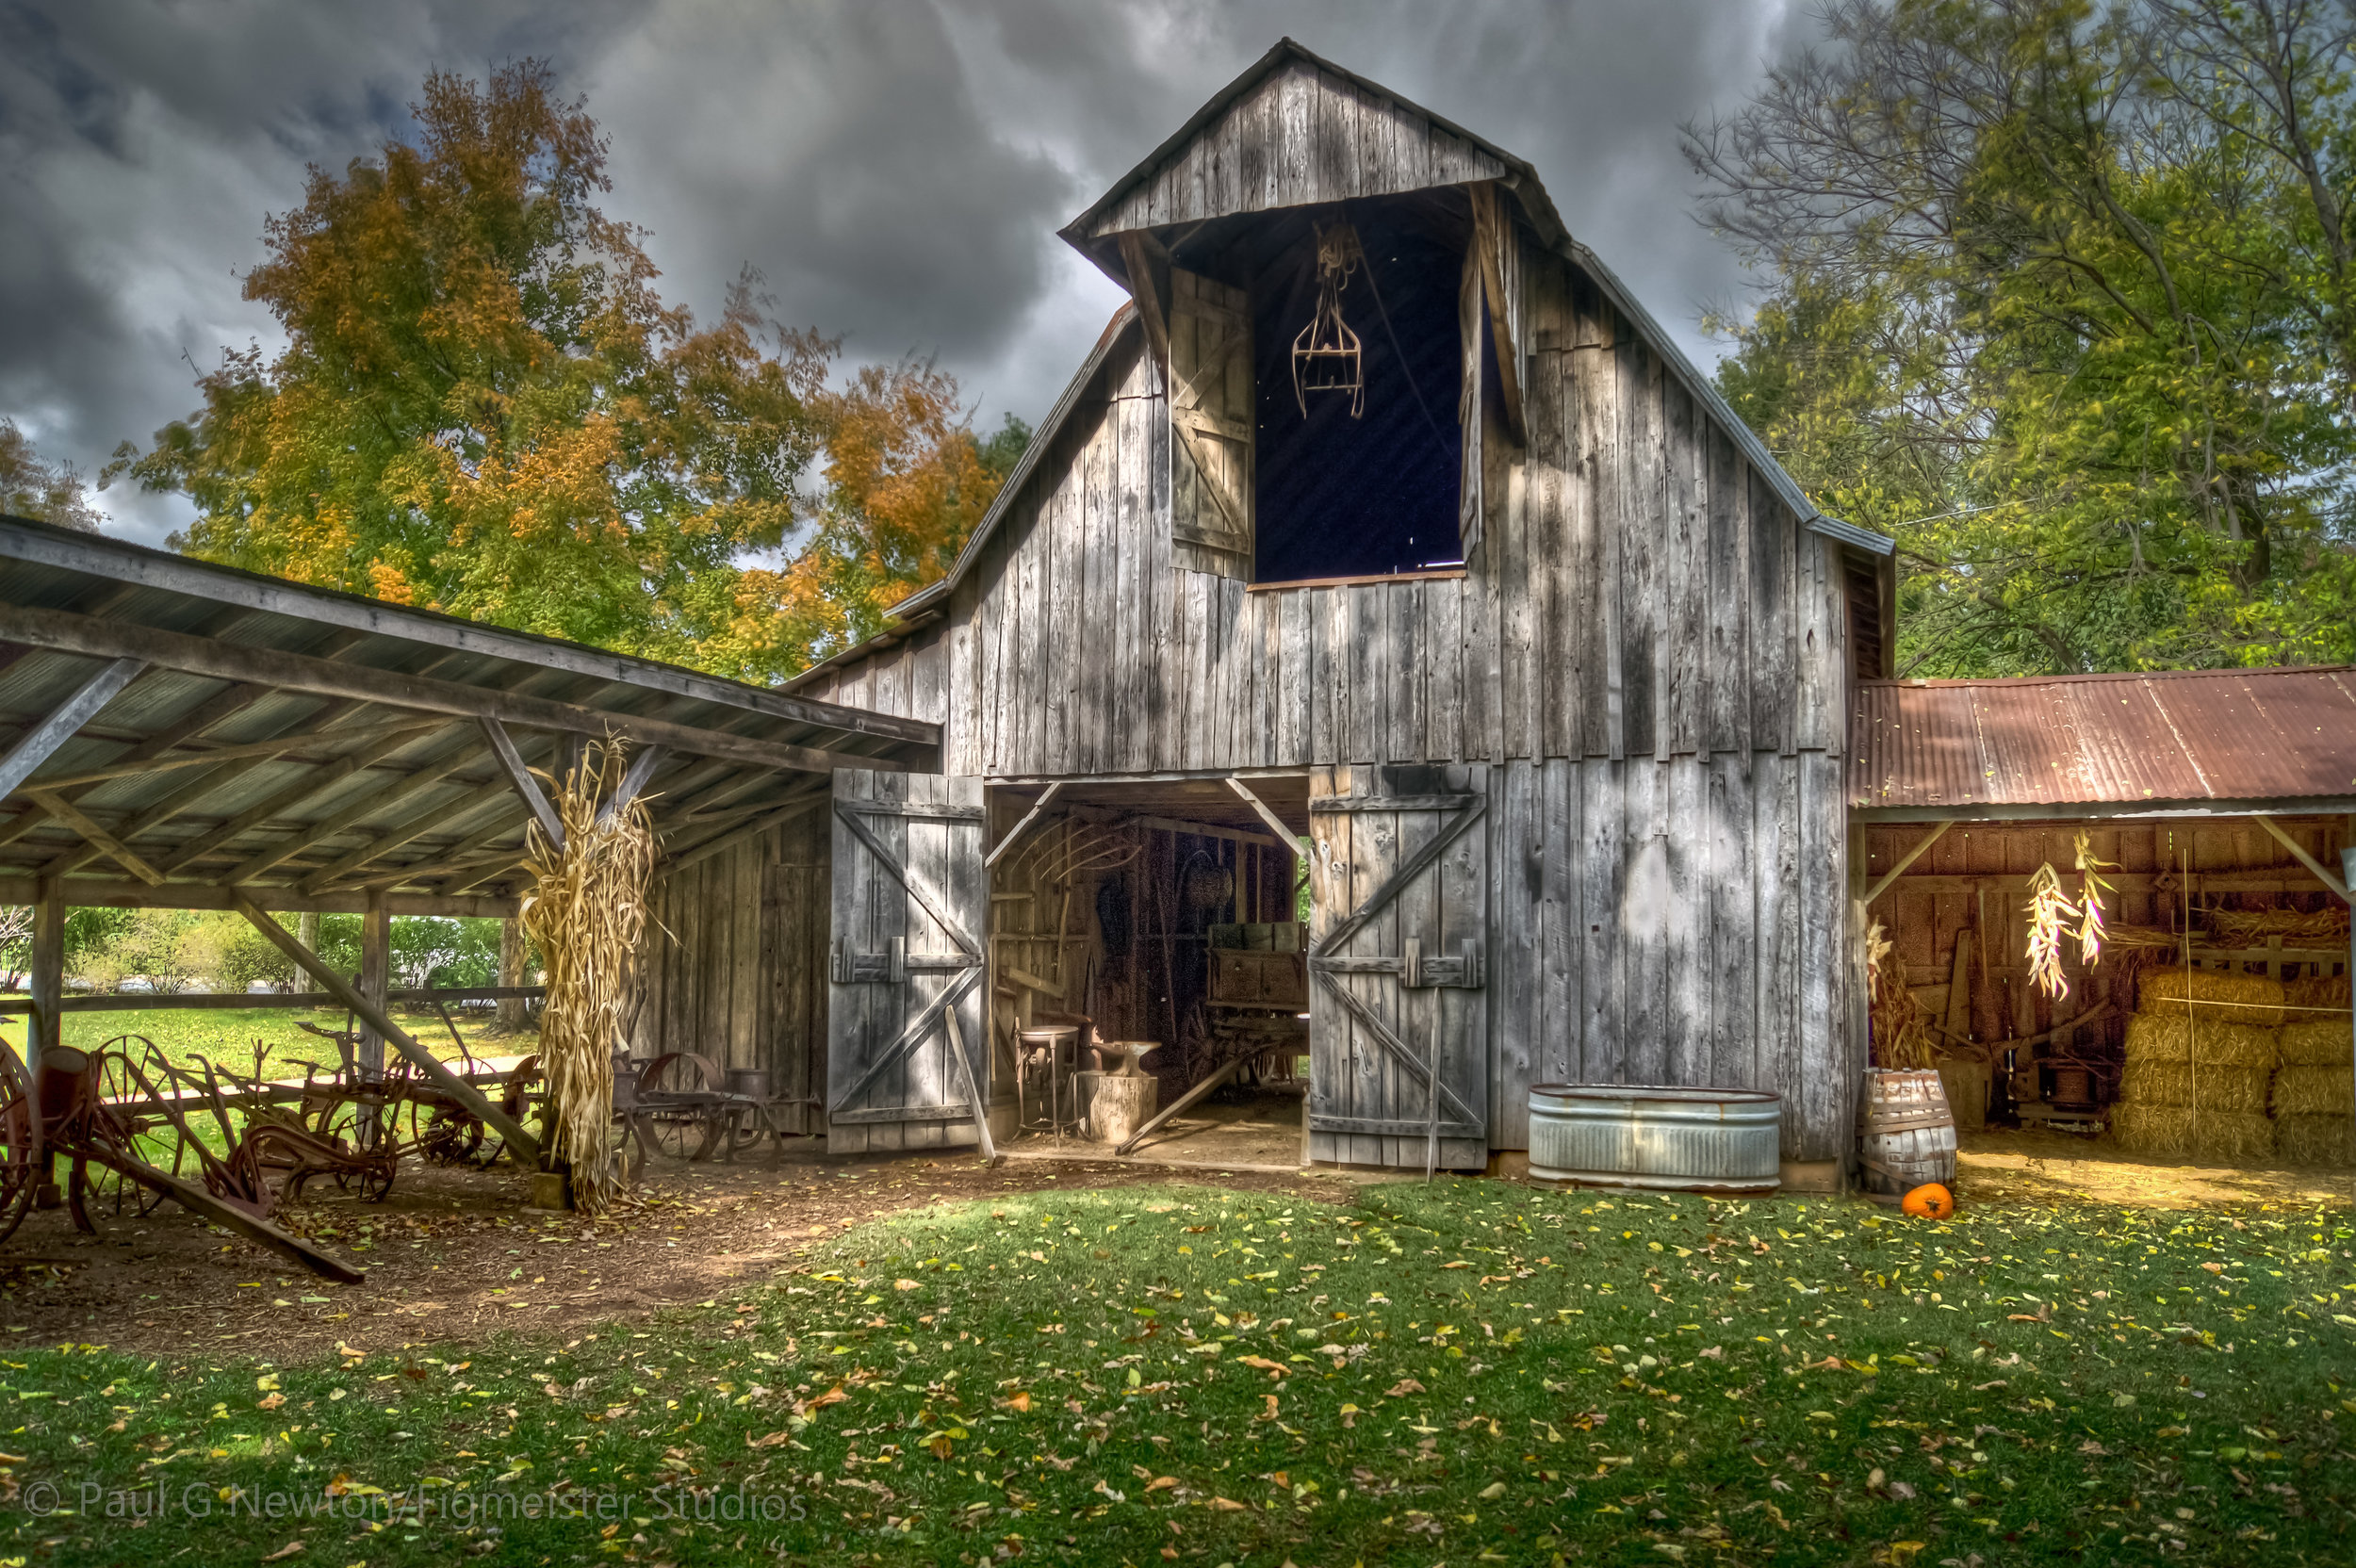 This is one of my earliest HDR Photographs of the Shiloh Museum Barn